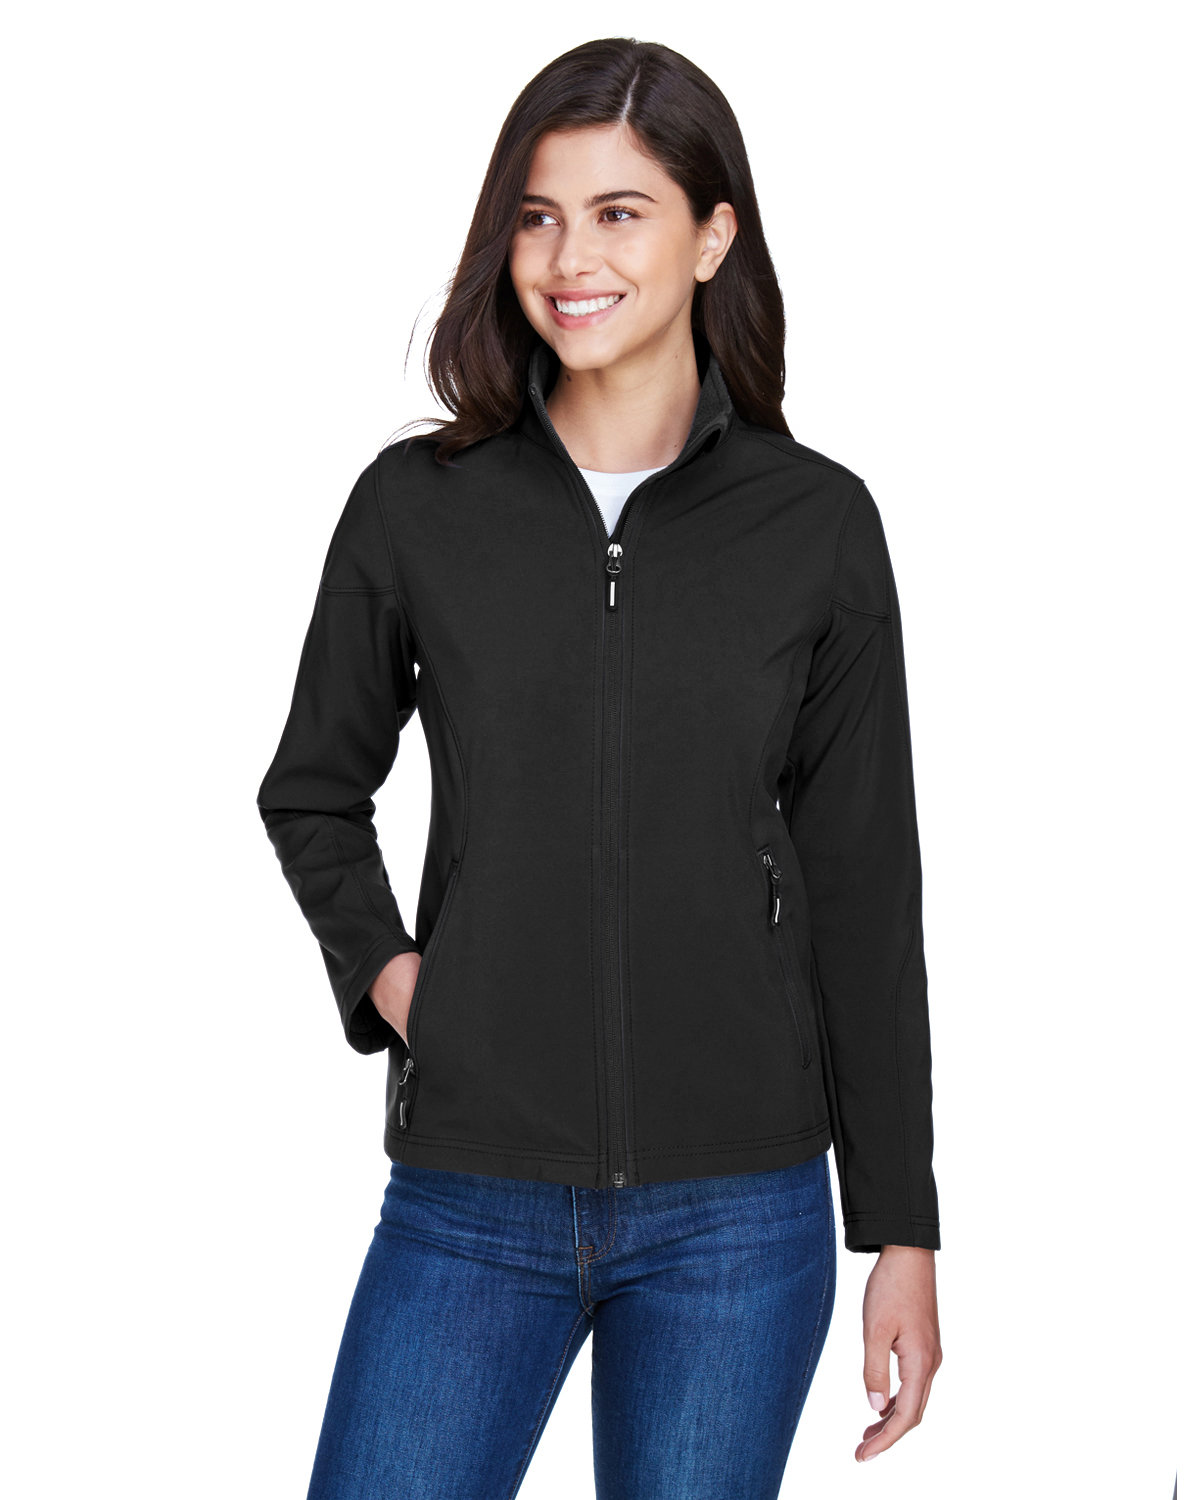 88184 North End Men/'s Zippered Pocket Two Layer Fleece Bonded Soft Shell Jacket